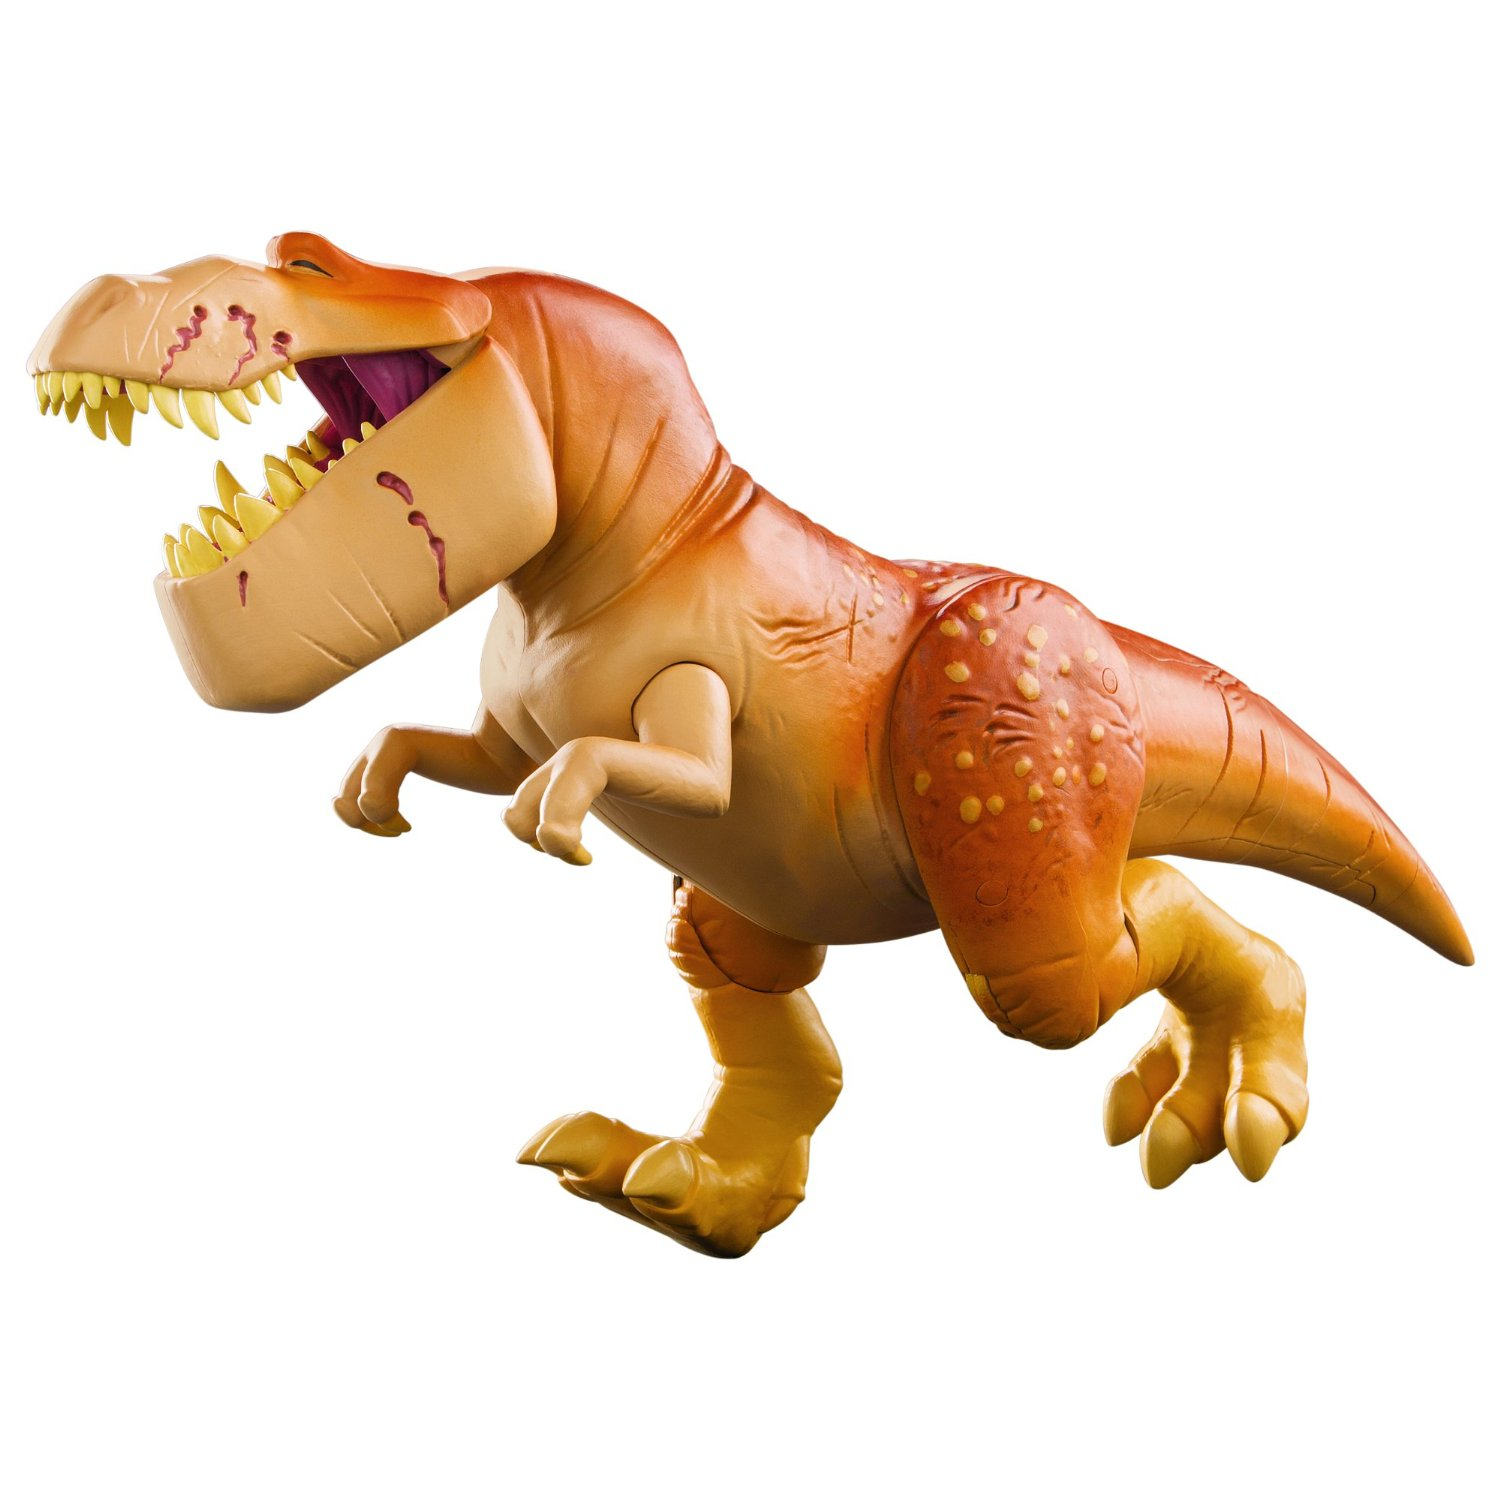 The Good Dinosaur - Galloping Butch Toy